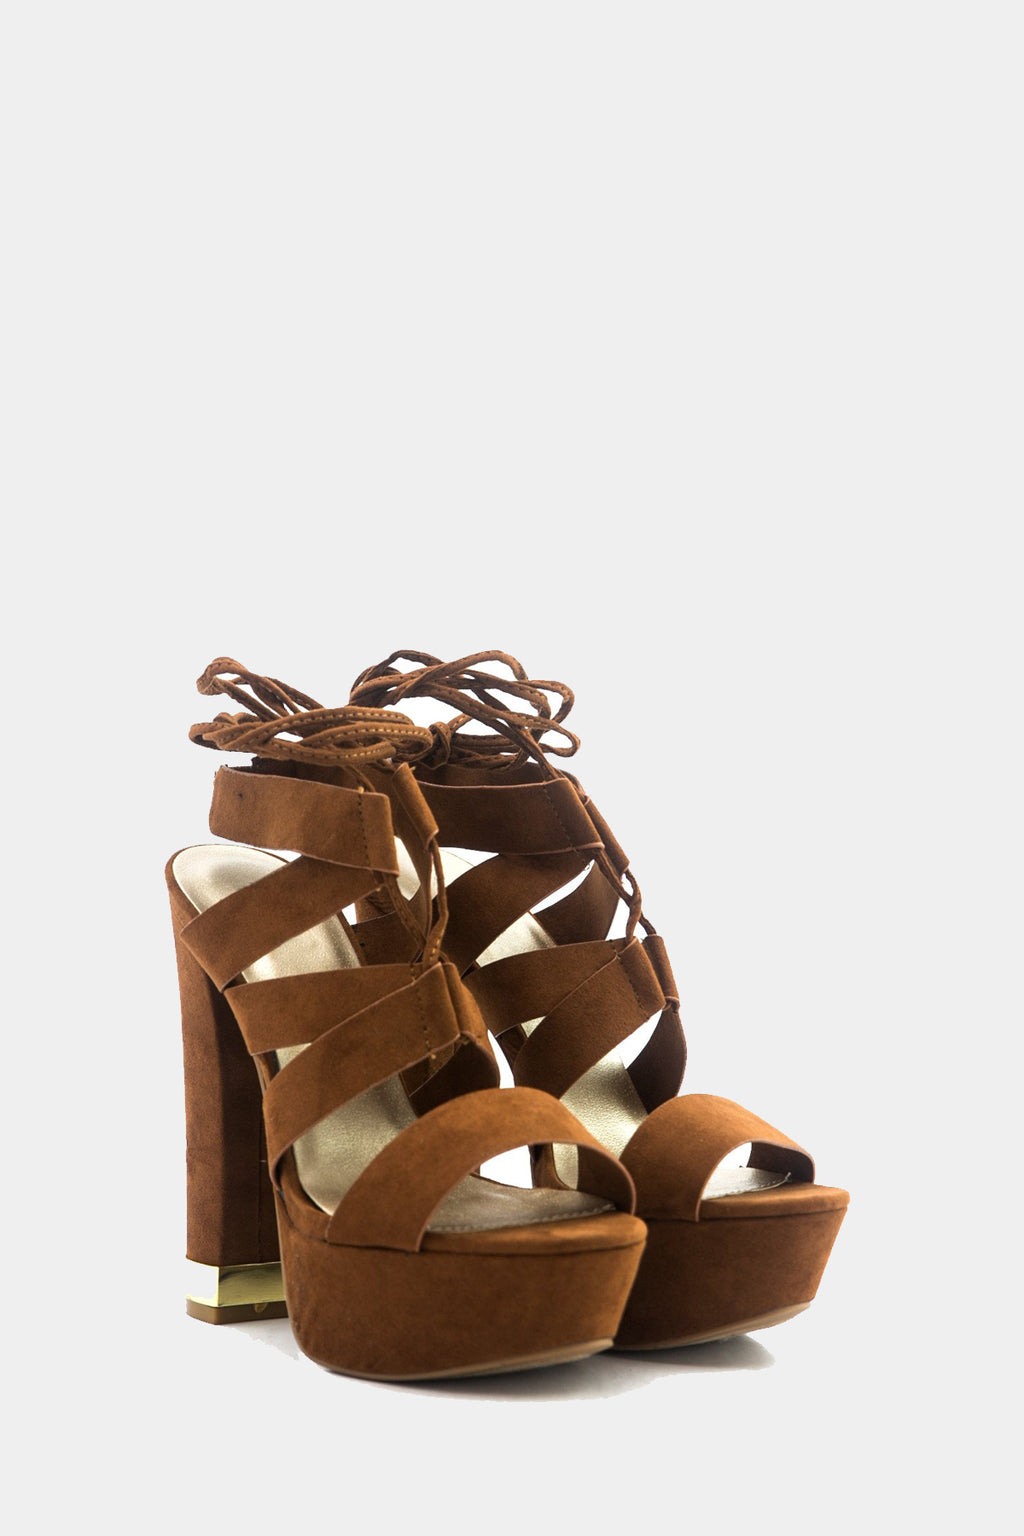 Nyla Strappy Sandal Heel - Brown /// Only Size 10 Left ///